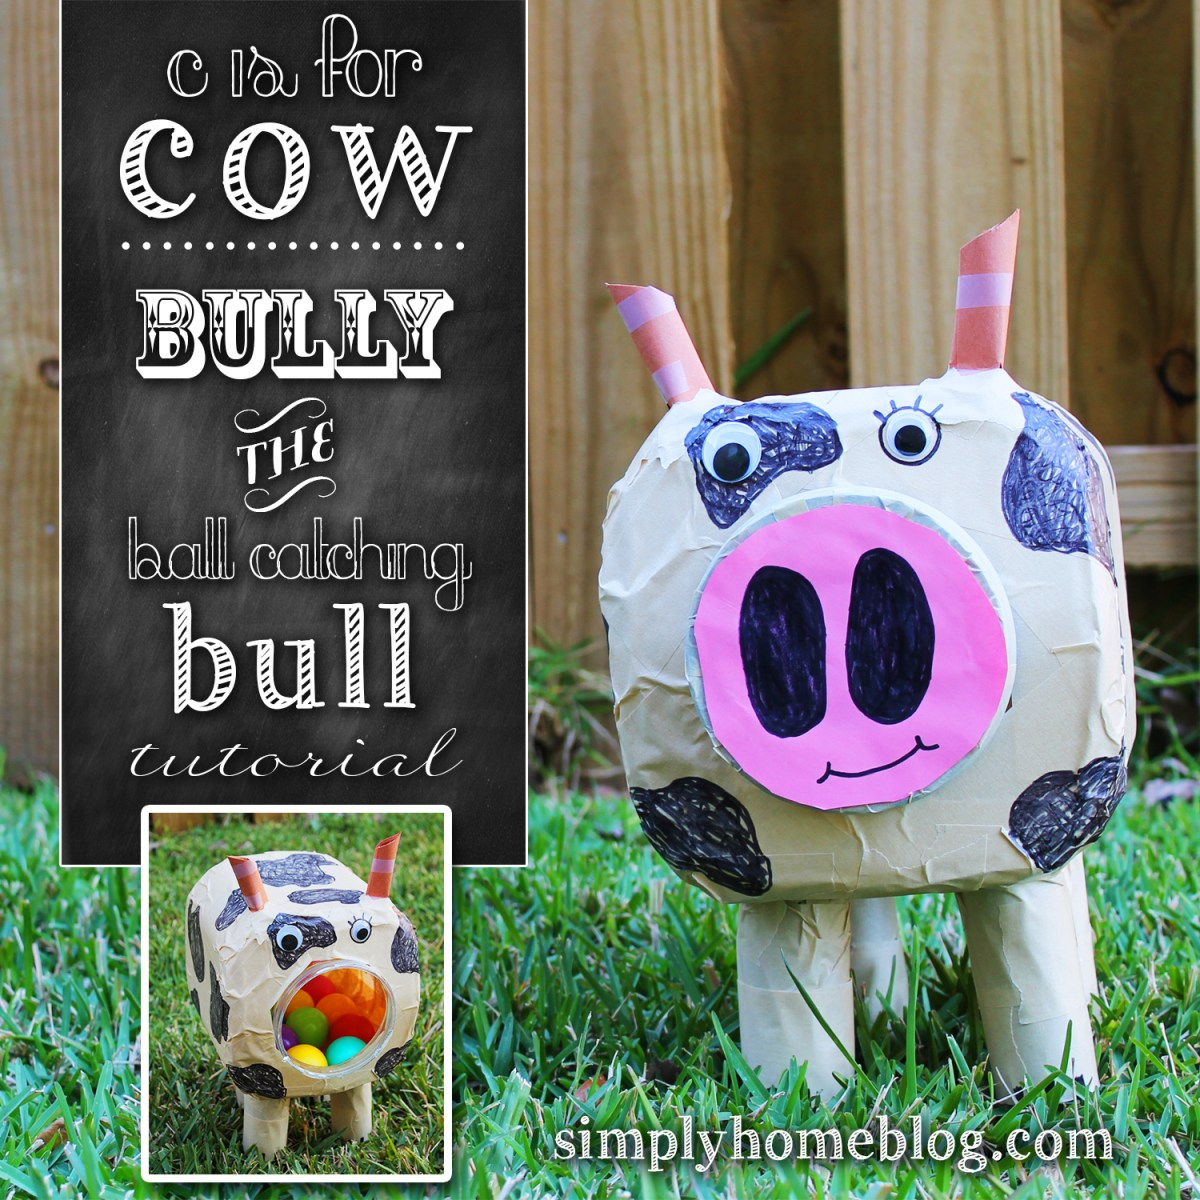 Bully the Ball Catching Bull Cow: A Free Upcycled Project